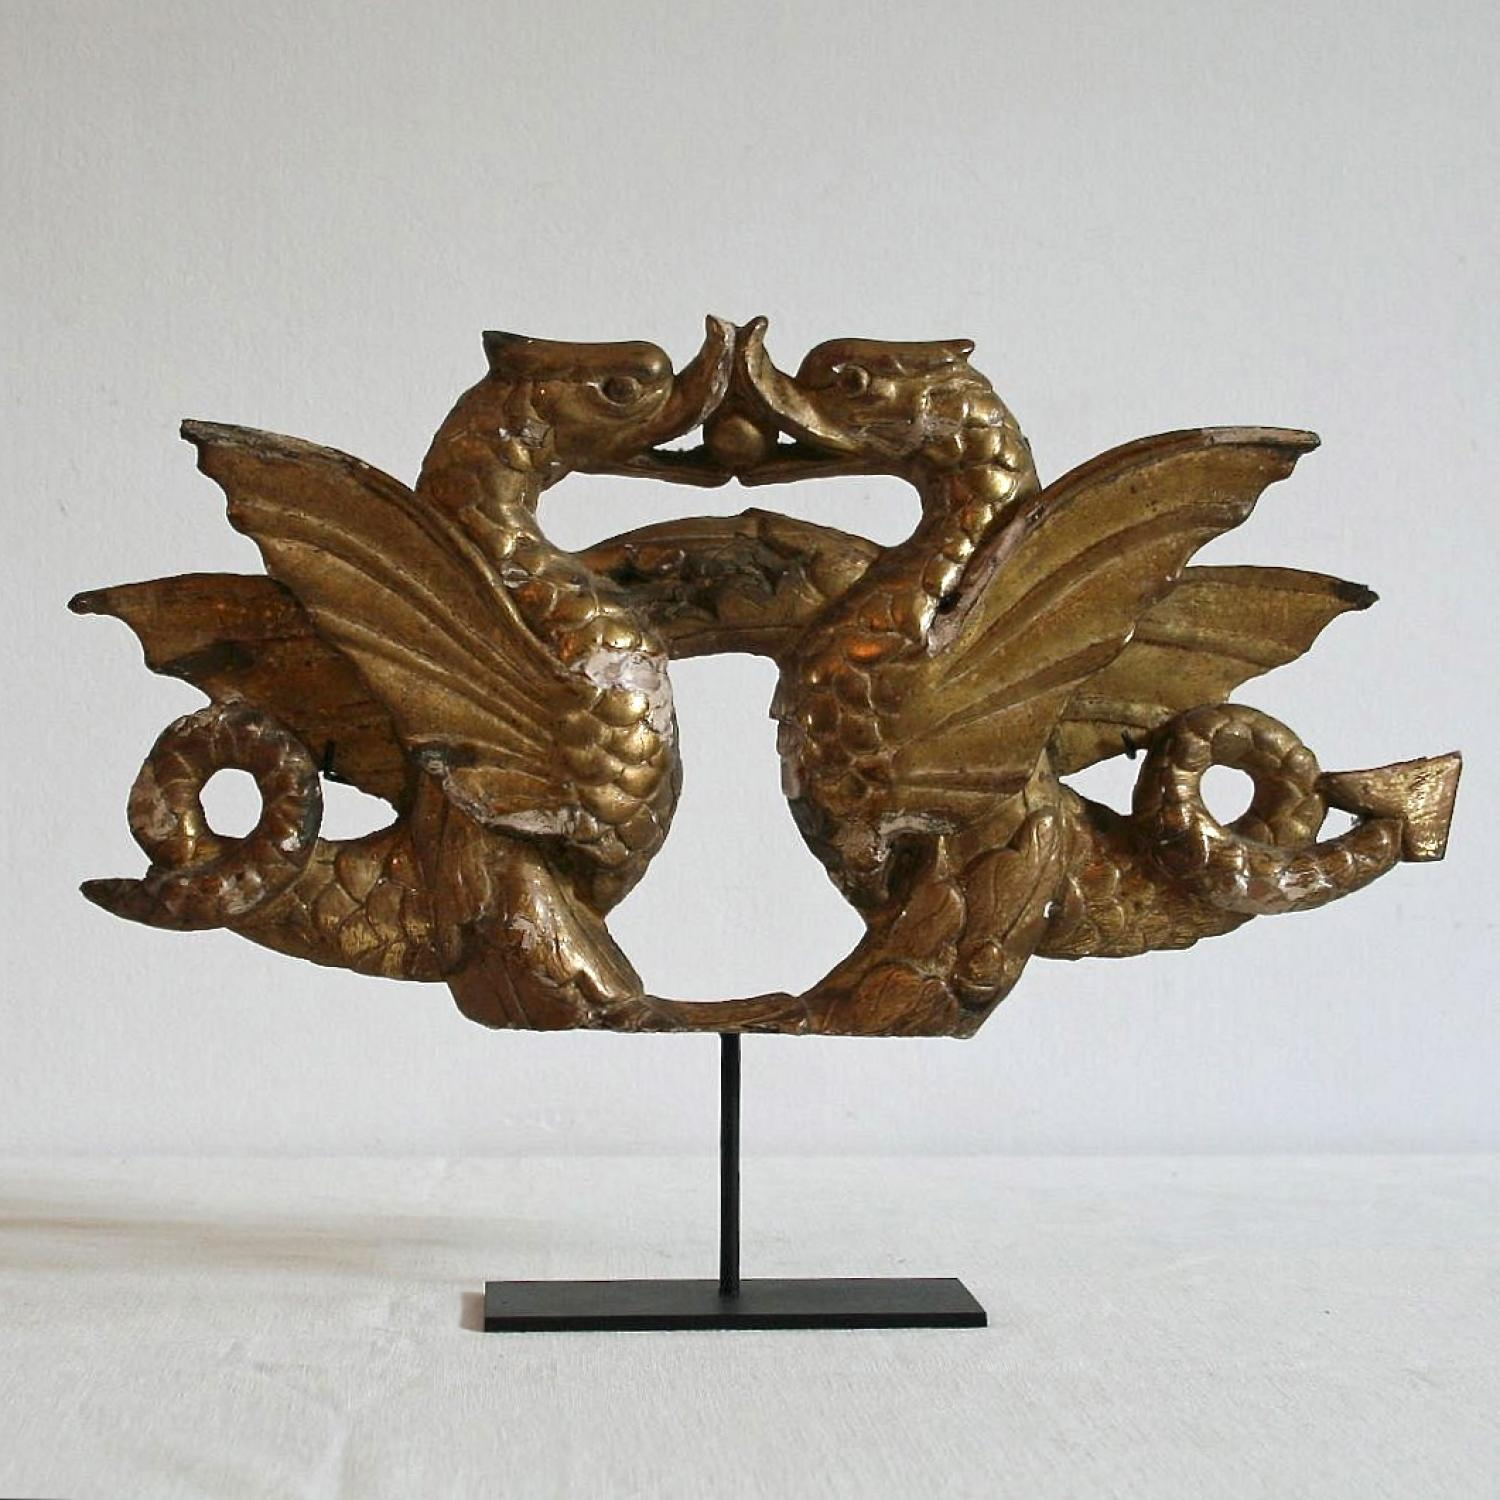 A PAIR OF 18th CENTURY GILDED FRENCH DRAGONS